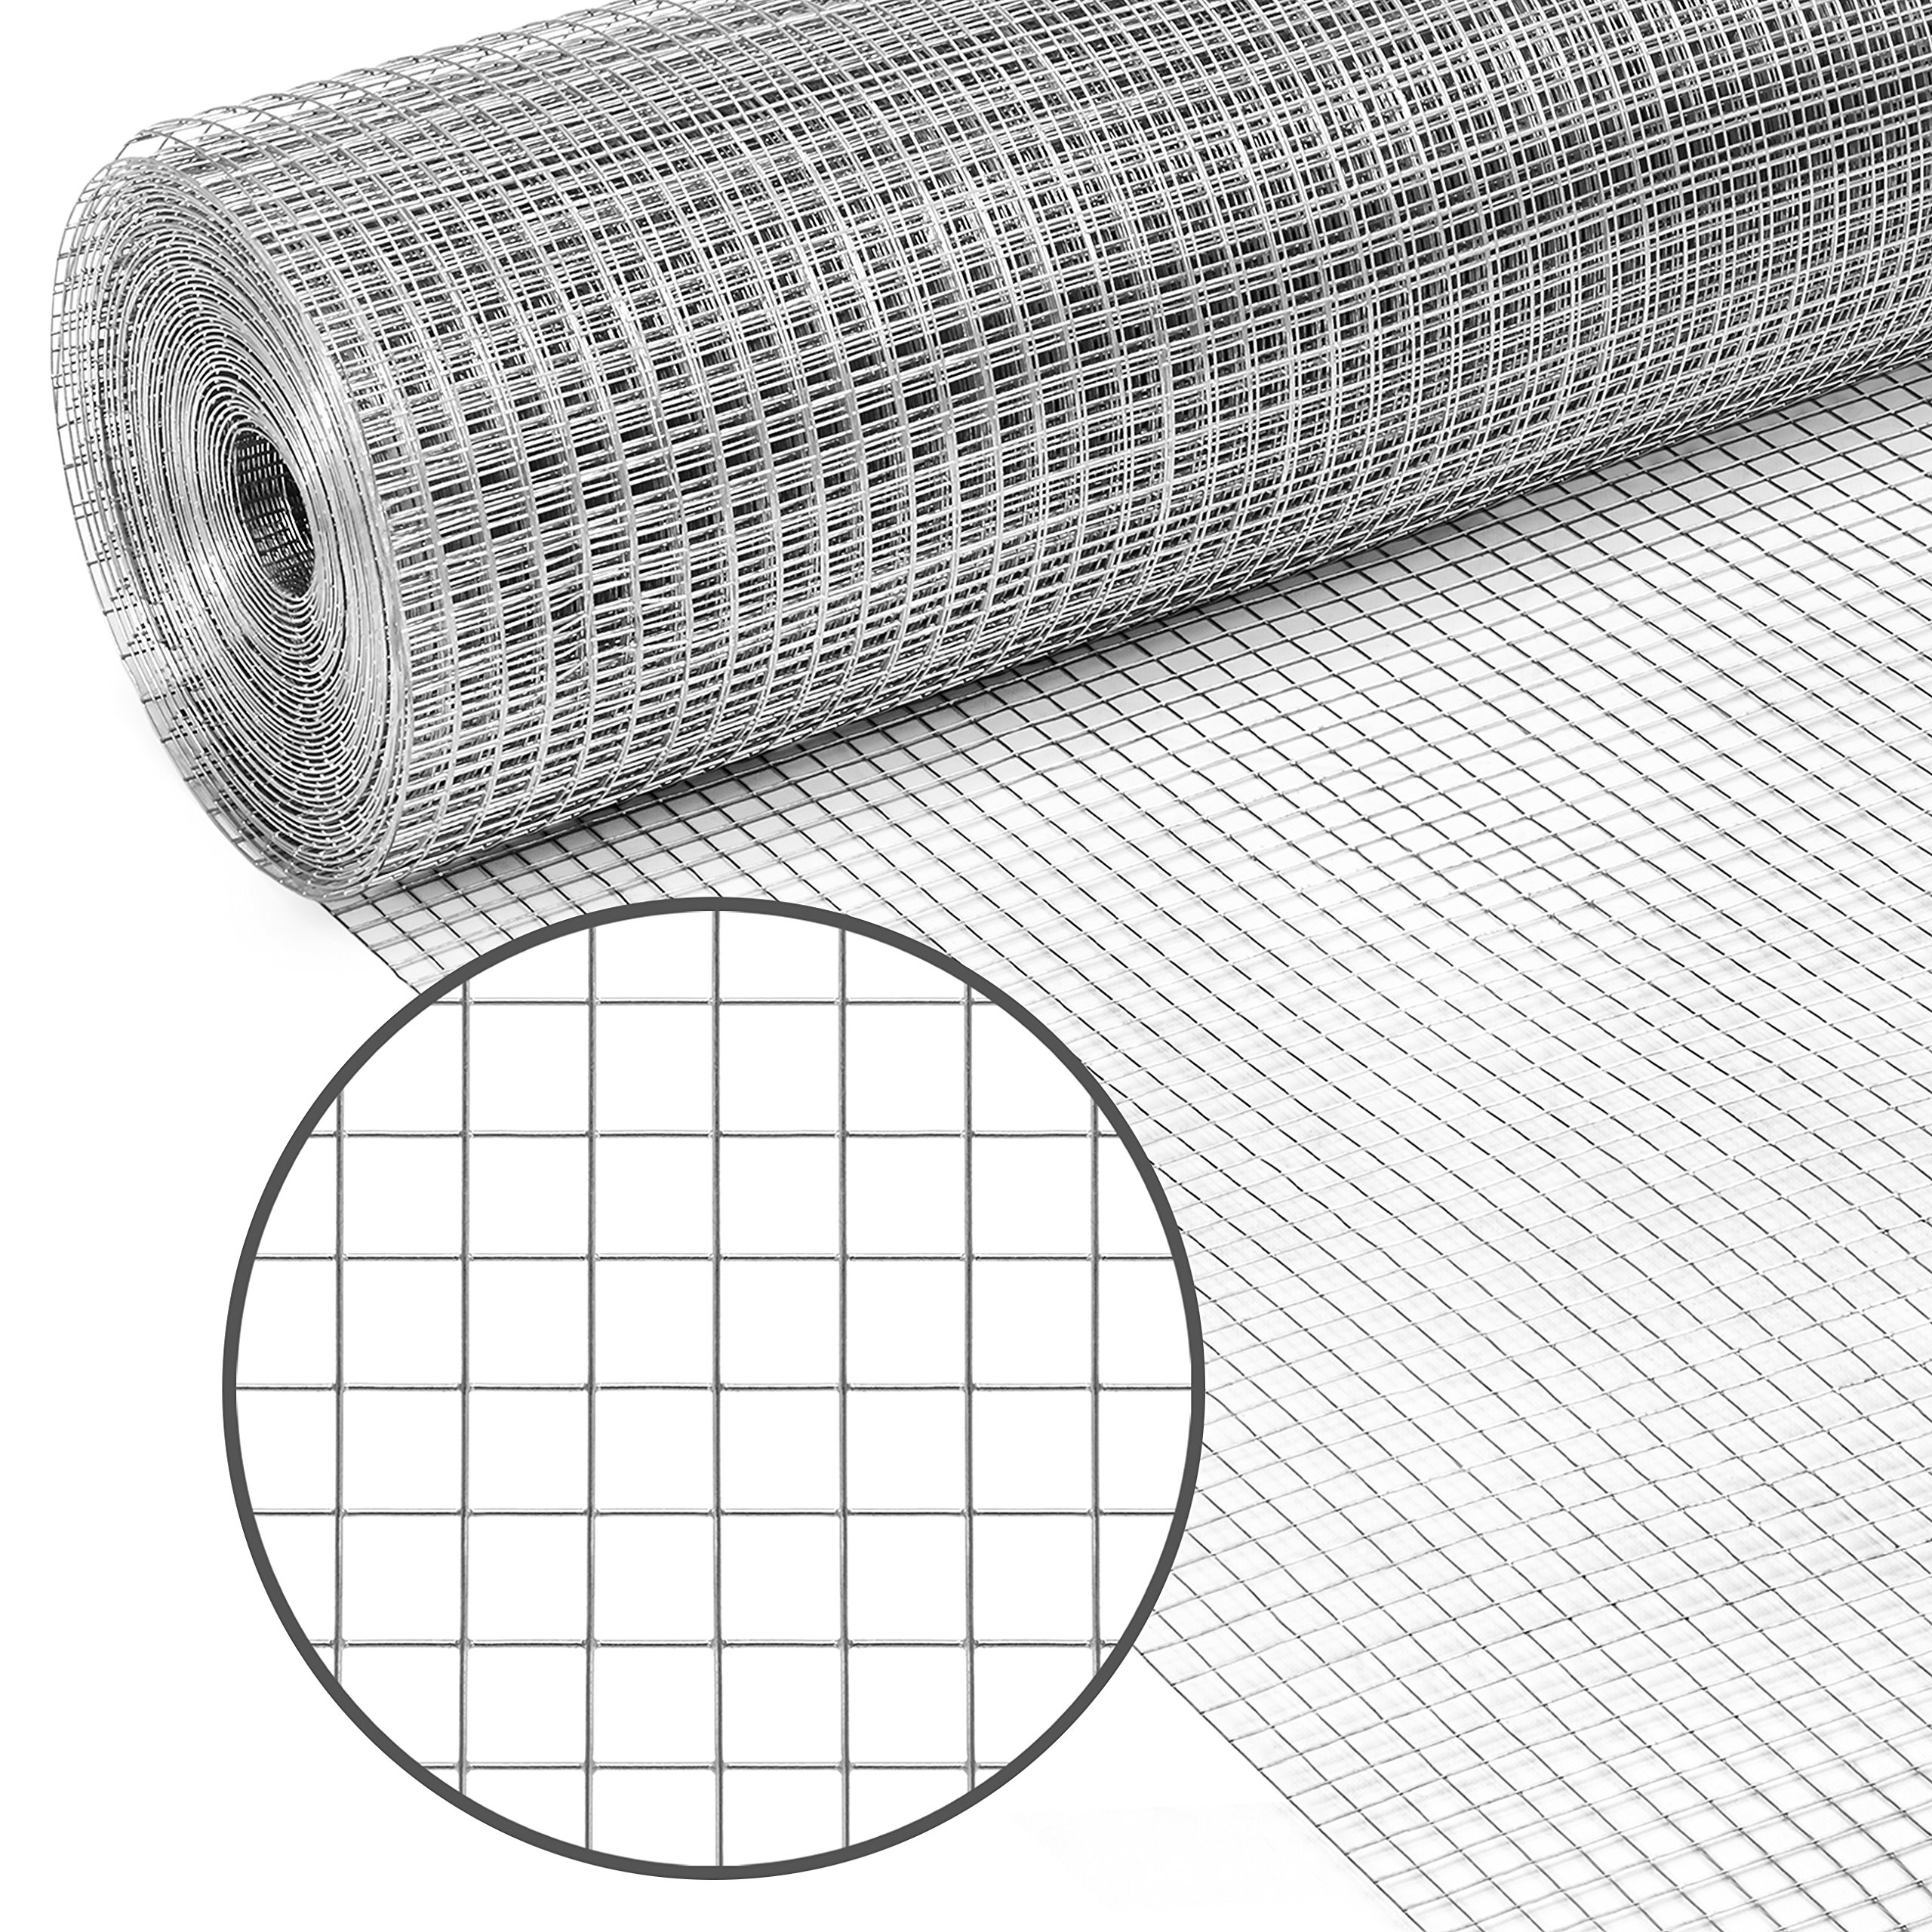 Best Choice Products Multipurpose 3x50-foot Double-Zinc 19-Gauge Galvanized Chicken Cage Wire Fence Netting for Poultry Coop, Animal, Garden Protection w/ 0.5-inch Openings, Silver by Best Choice Products